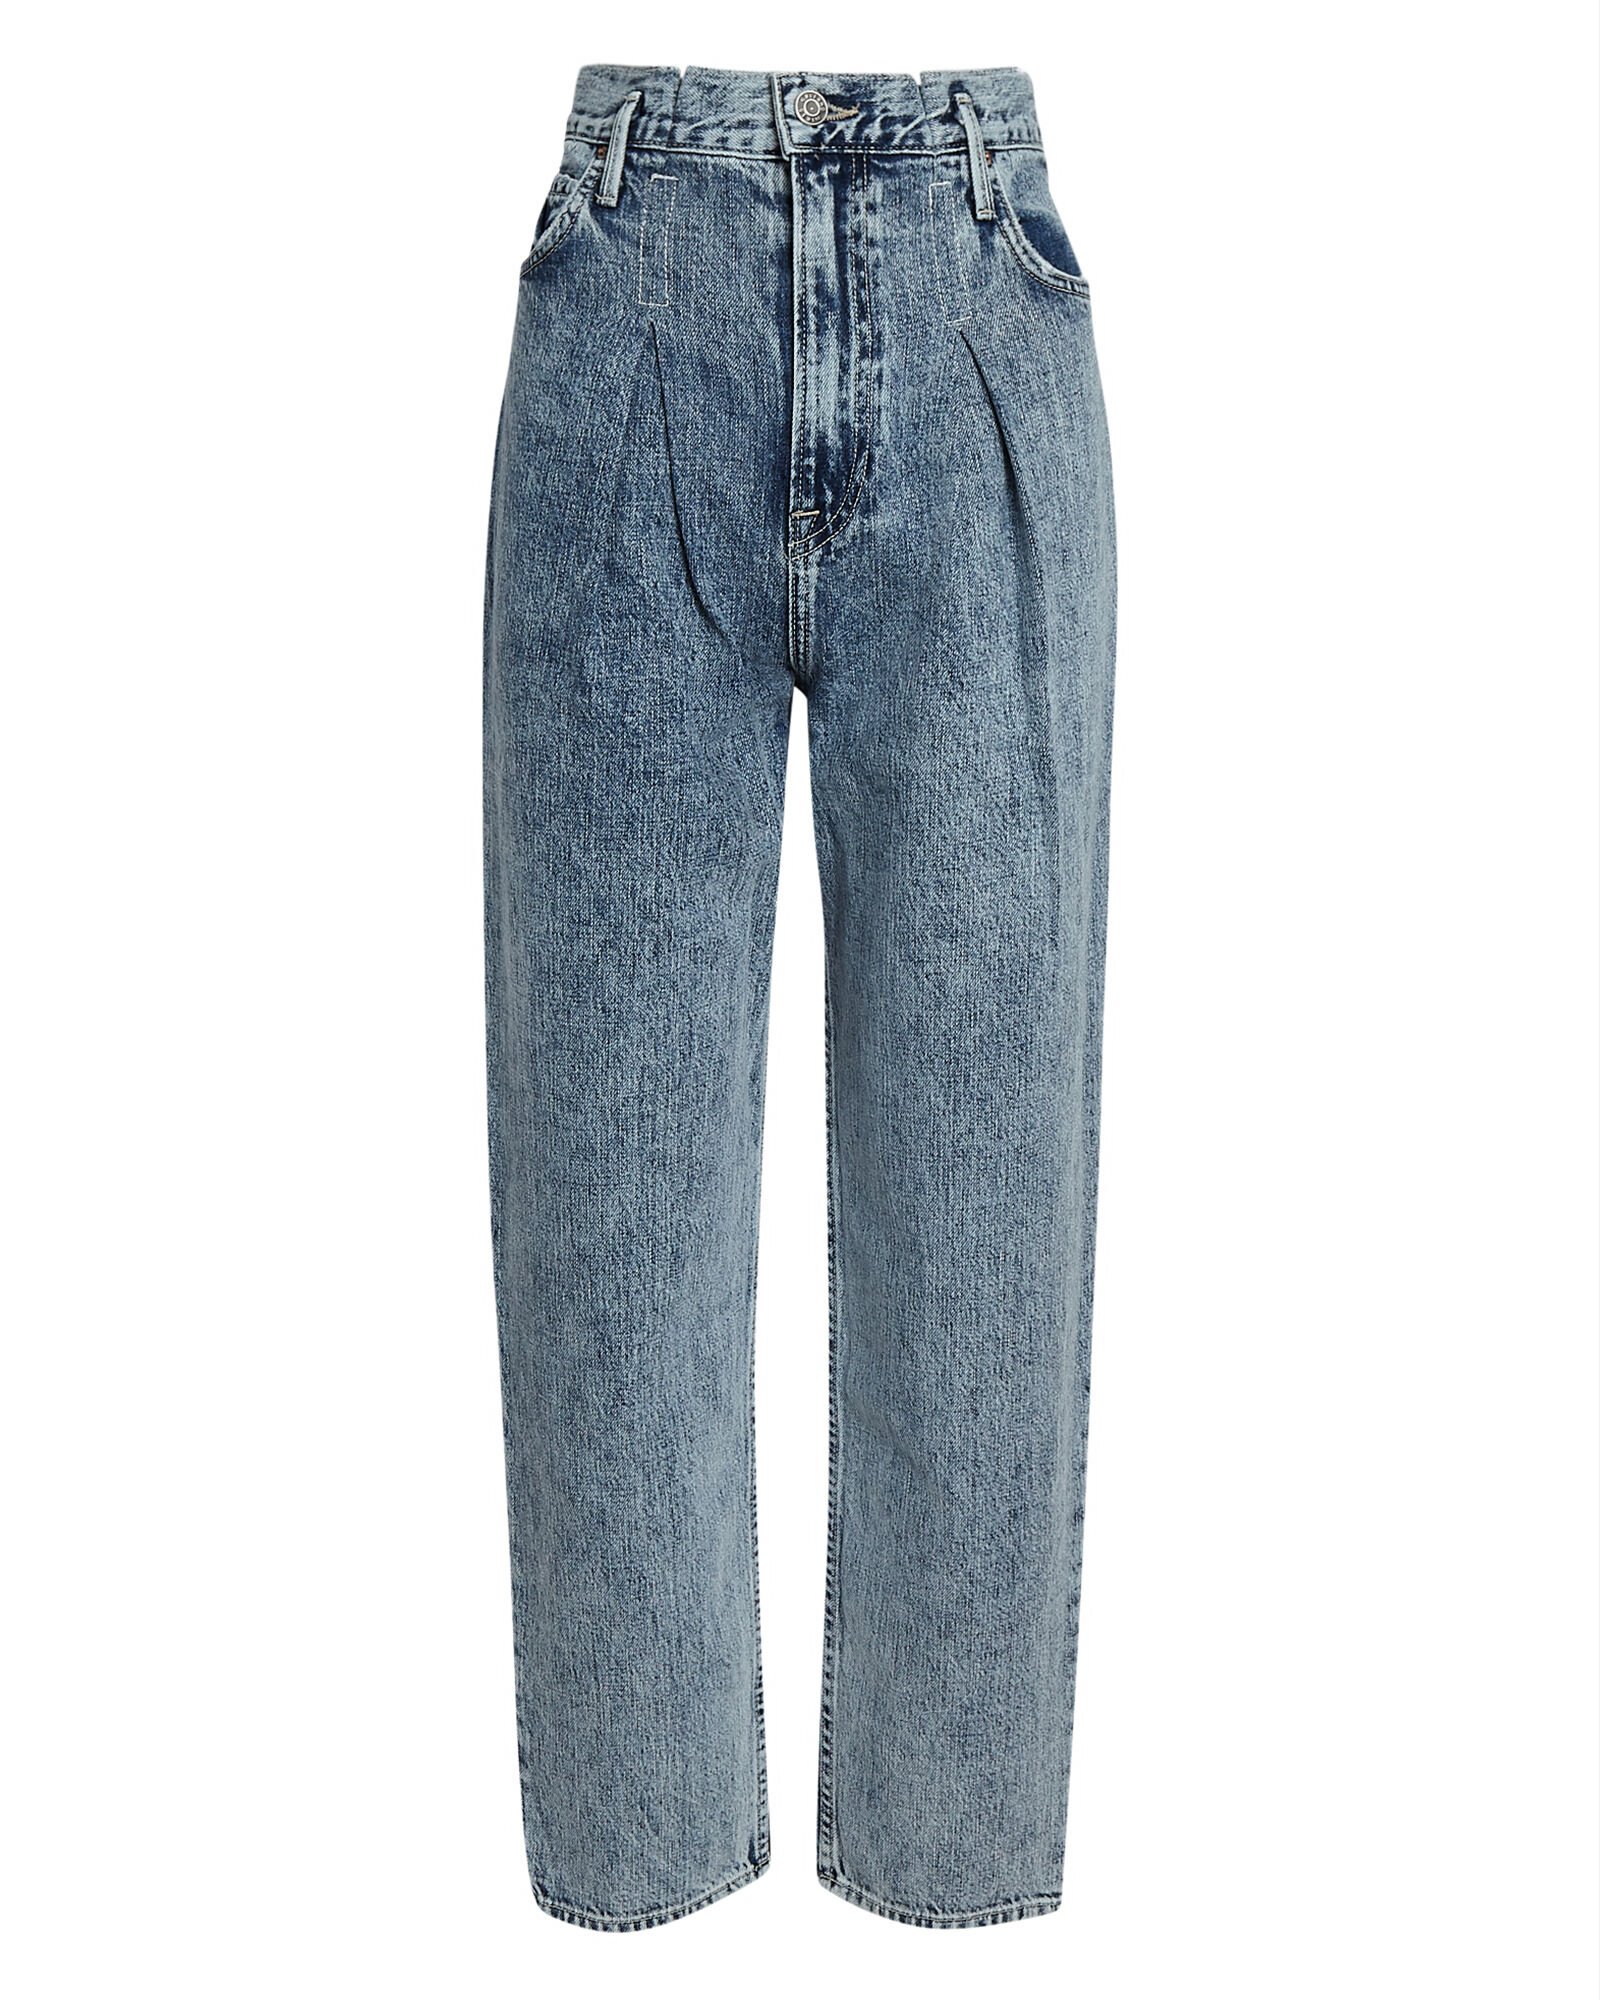 Teagan Pleated Straight-Leg Jeans, DENIM, hi-res